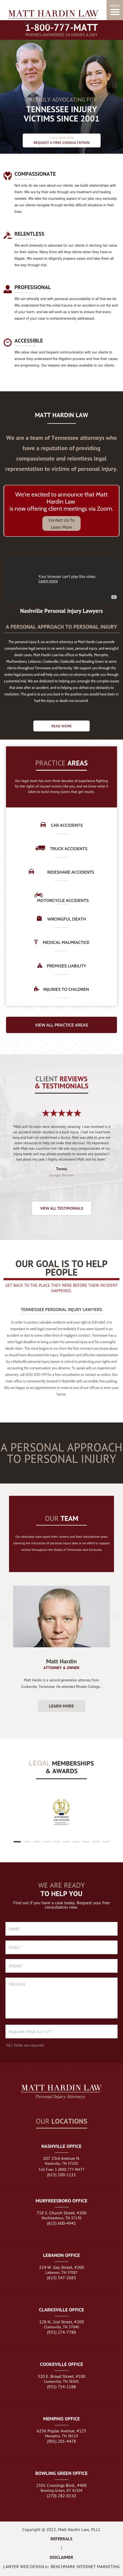 Matt Hardin Law, PLLC - Nashville TN Lawyers